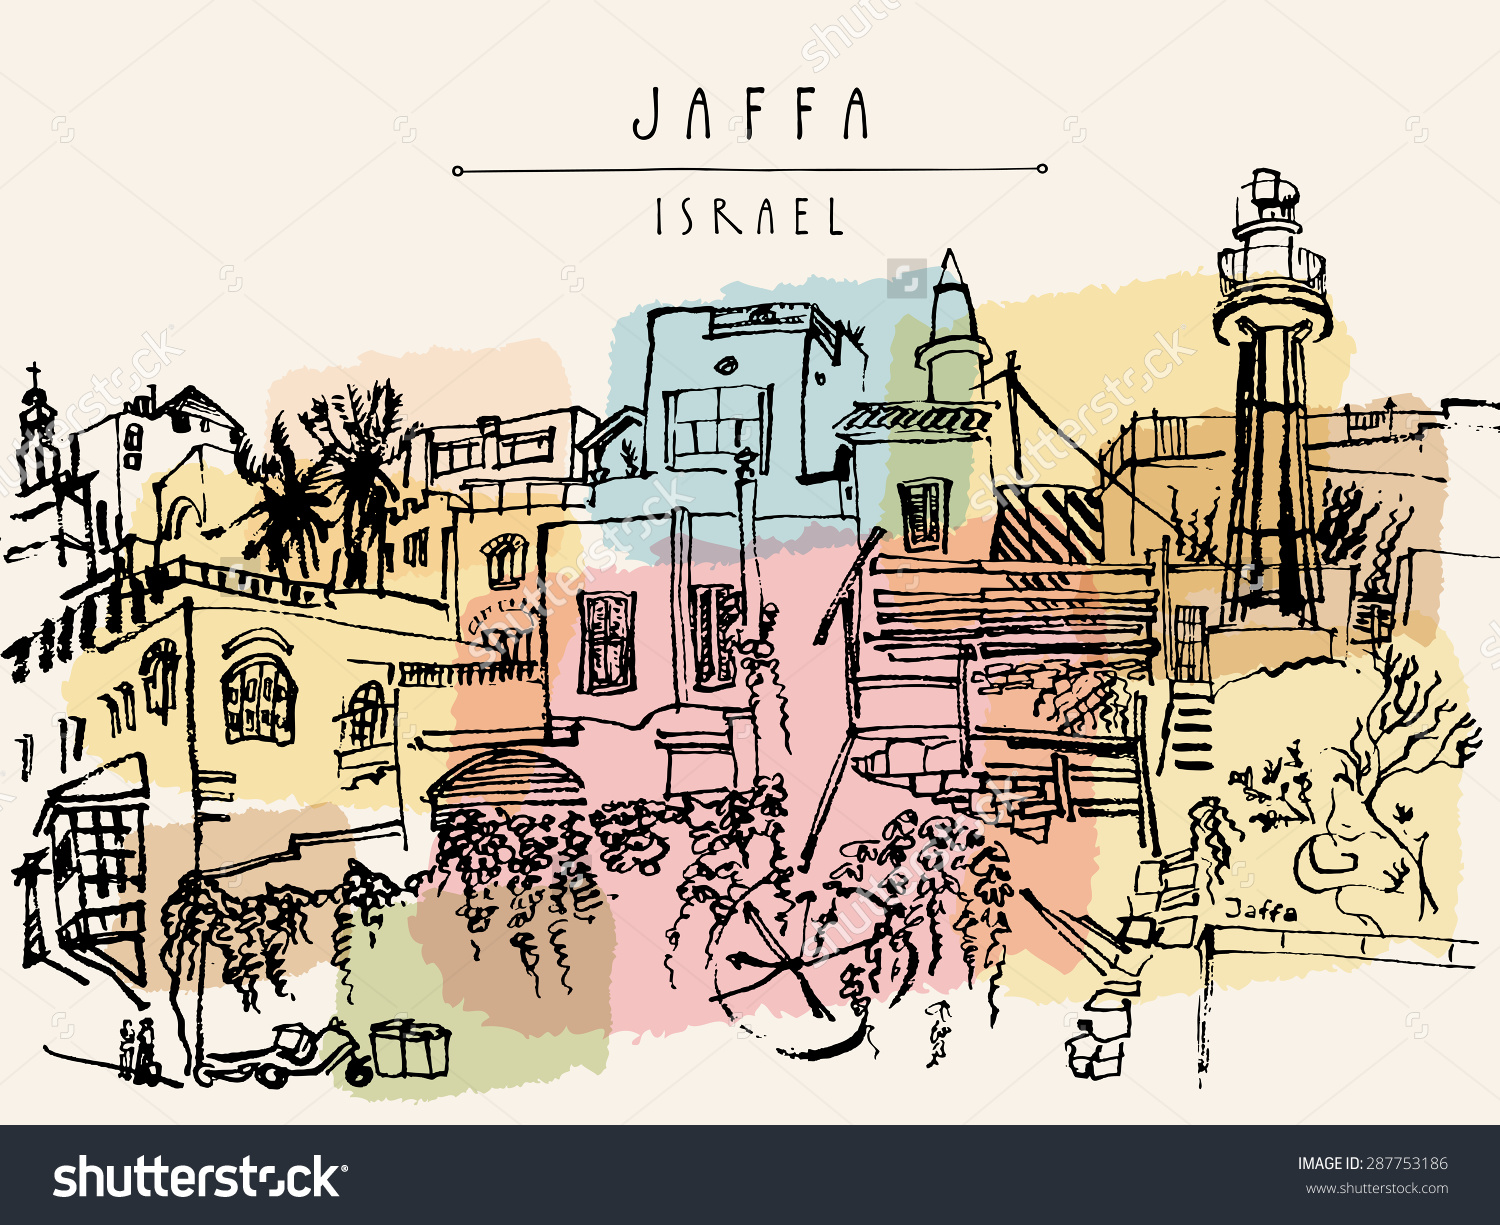 Artistic Illustration Jaffa Yafo Tel Aviv Stock Illustration.